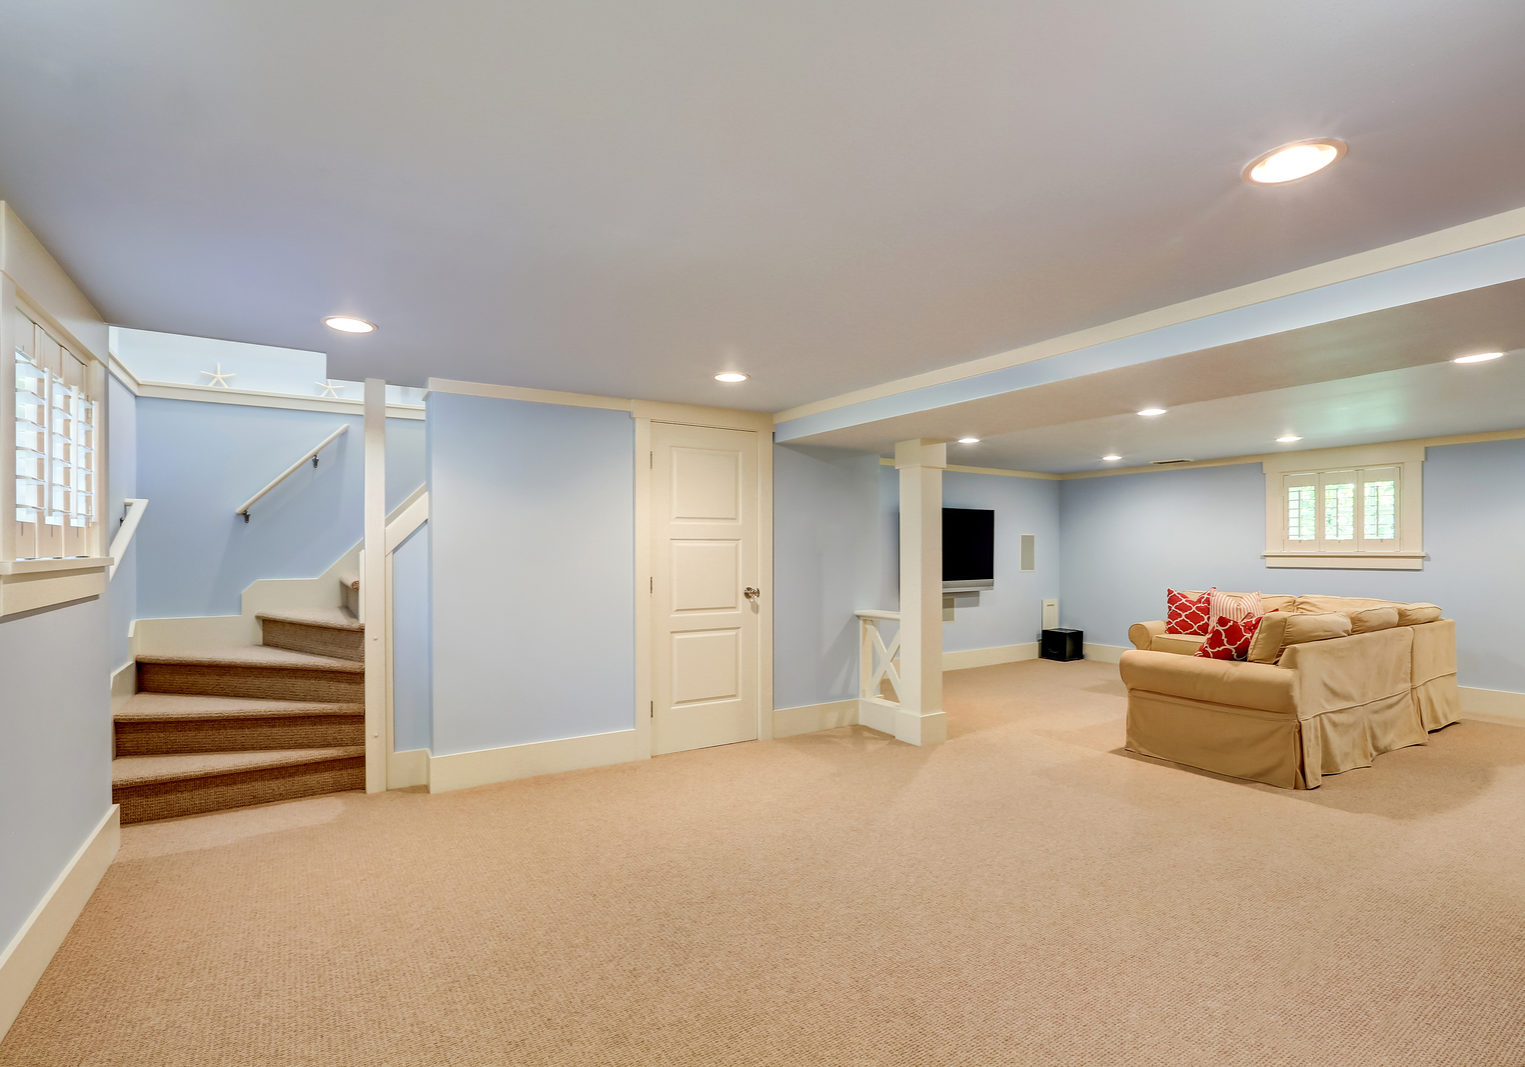 Spacious basement room interior in pastel blue tones. Beige carpet floor and large corner sofa with TV. Northwest USA